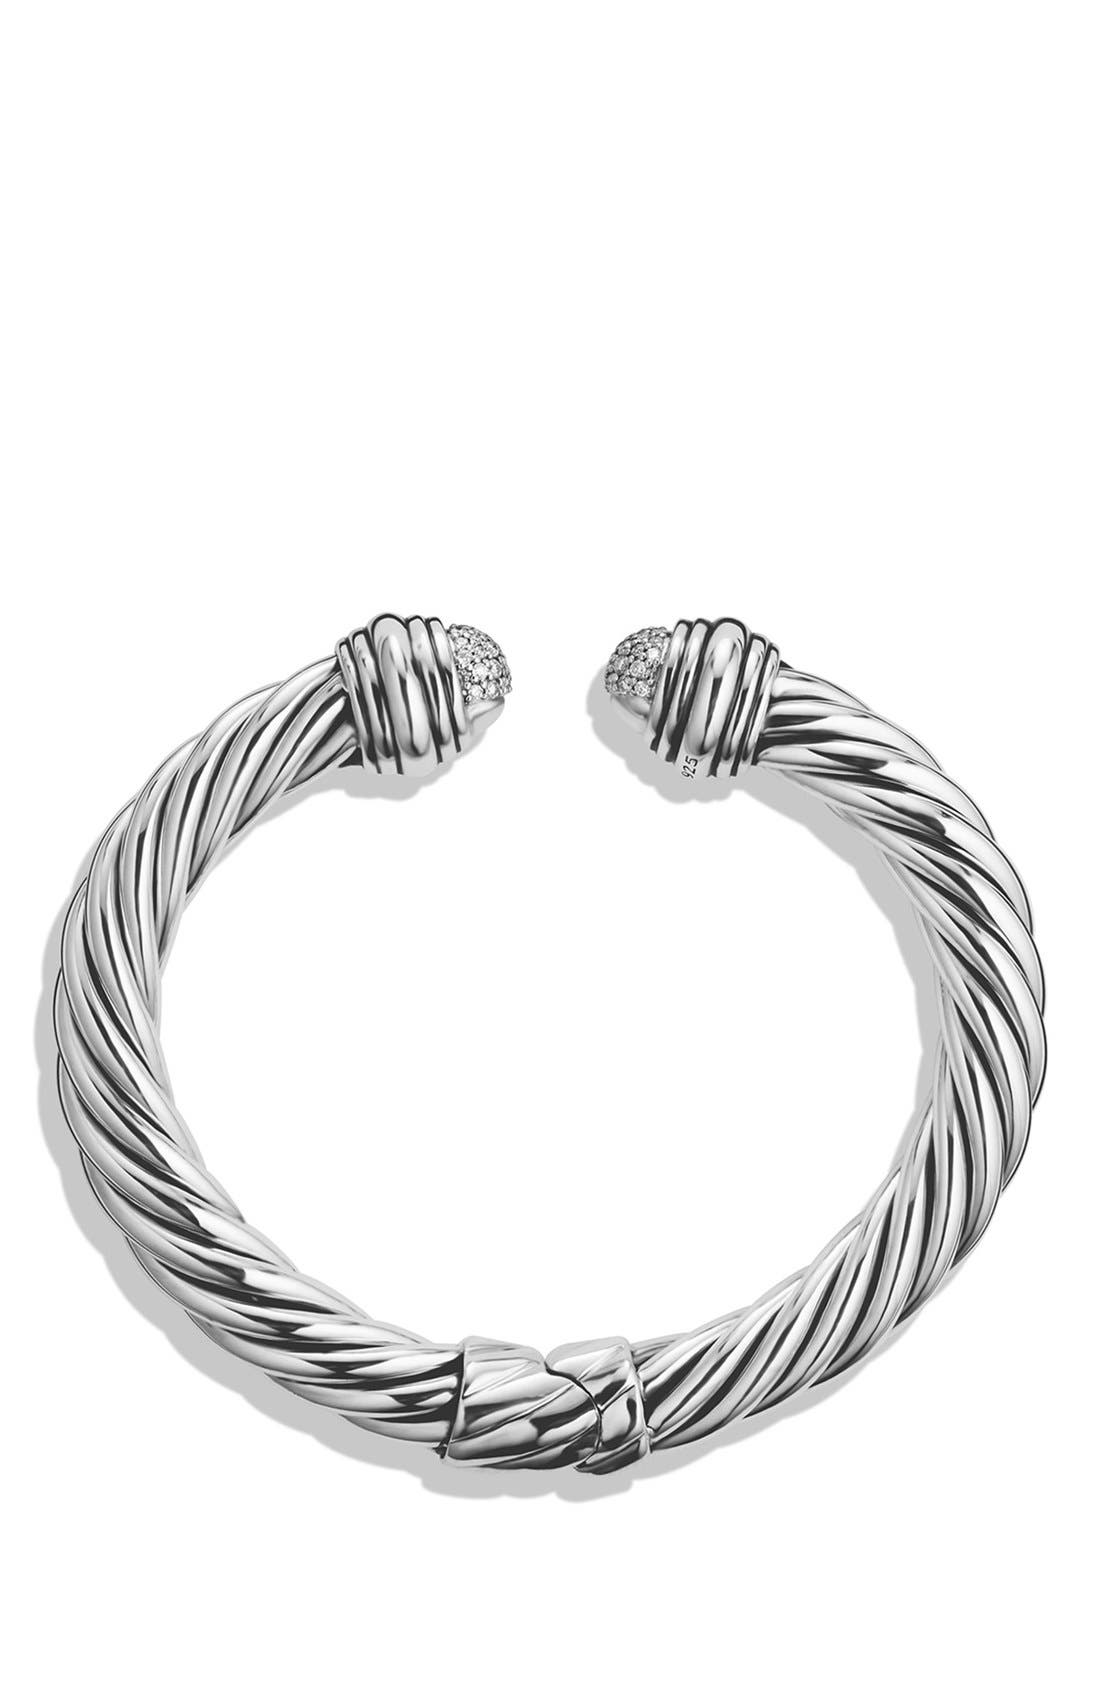 Cable Classics Pavé Tip Bracelet with Diamonds, 8.5mm,                             Alternate thumbnail 2, color,                             Diamond